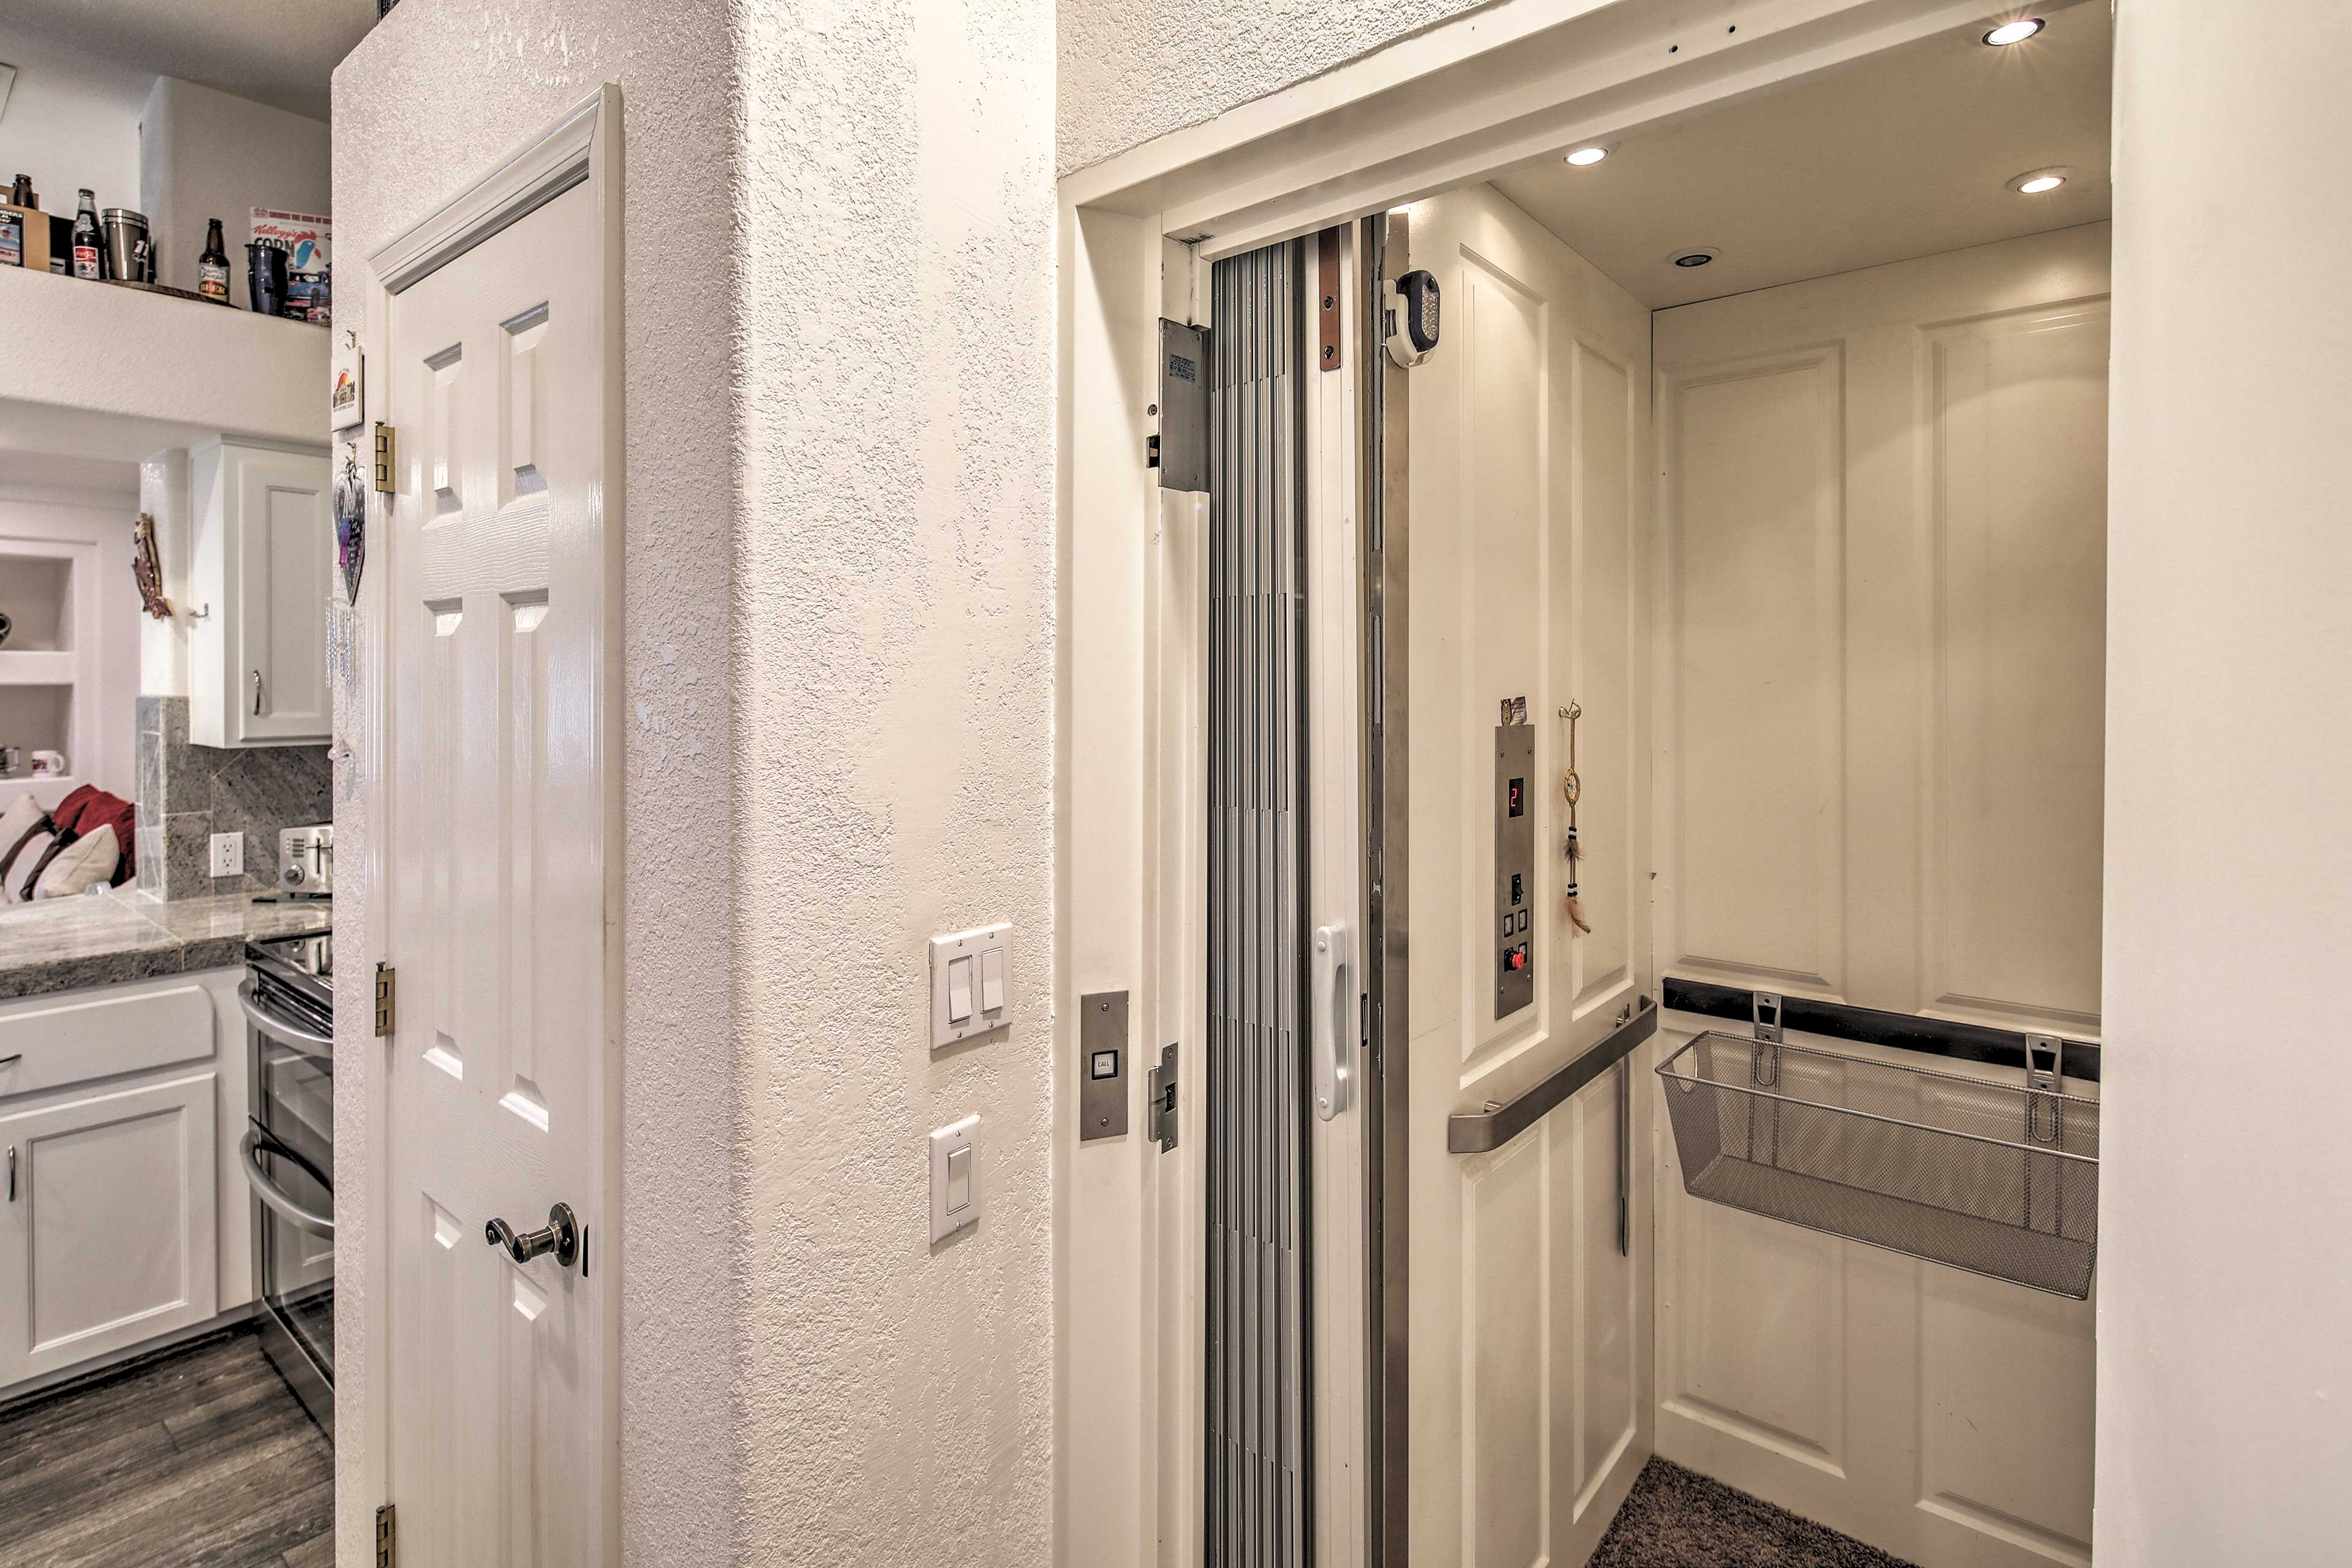 An elevator makes life easier for the mobility impaired.